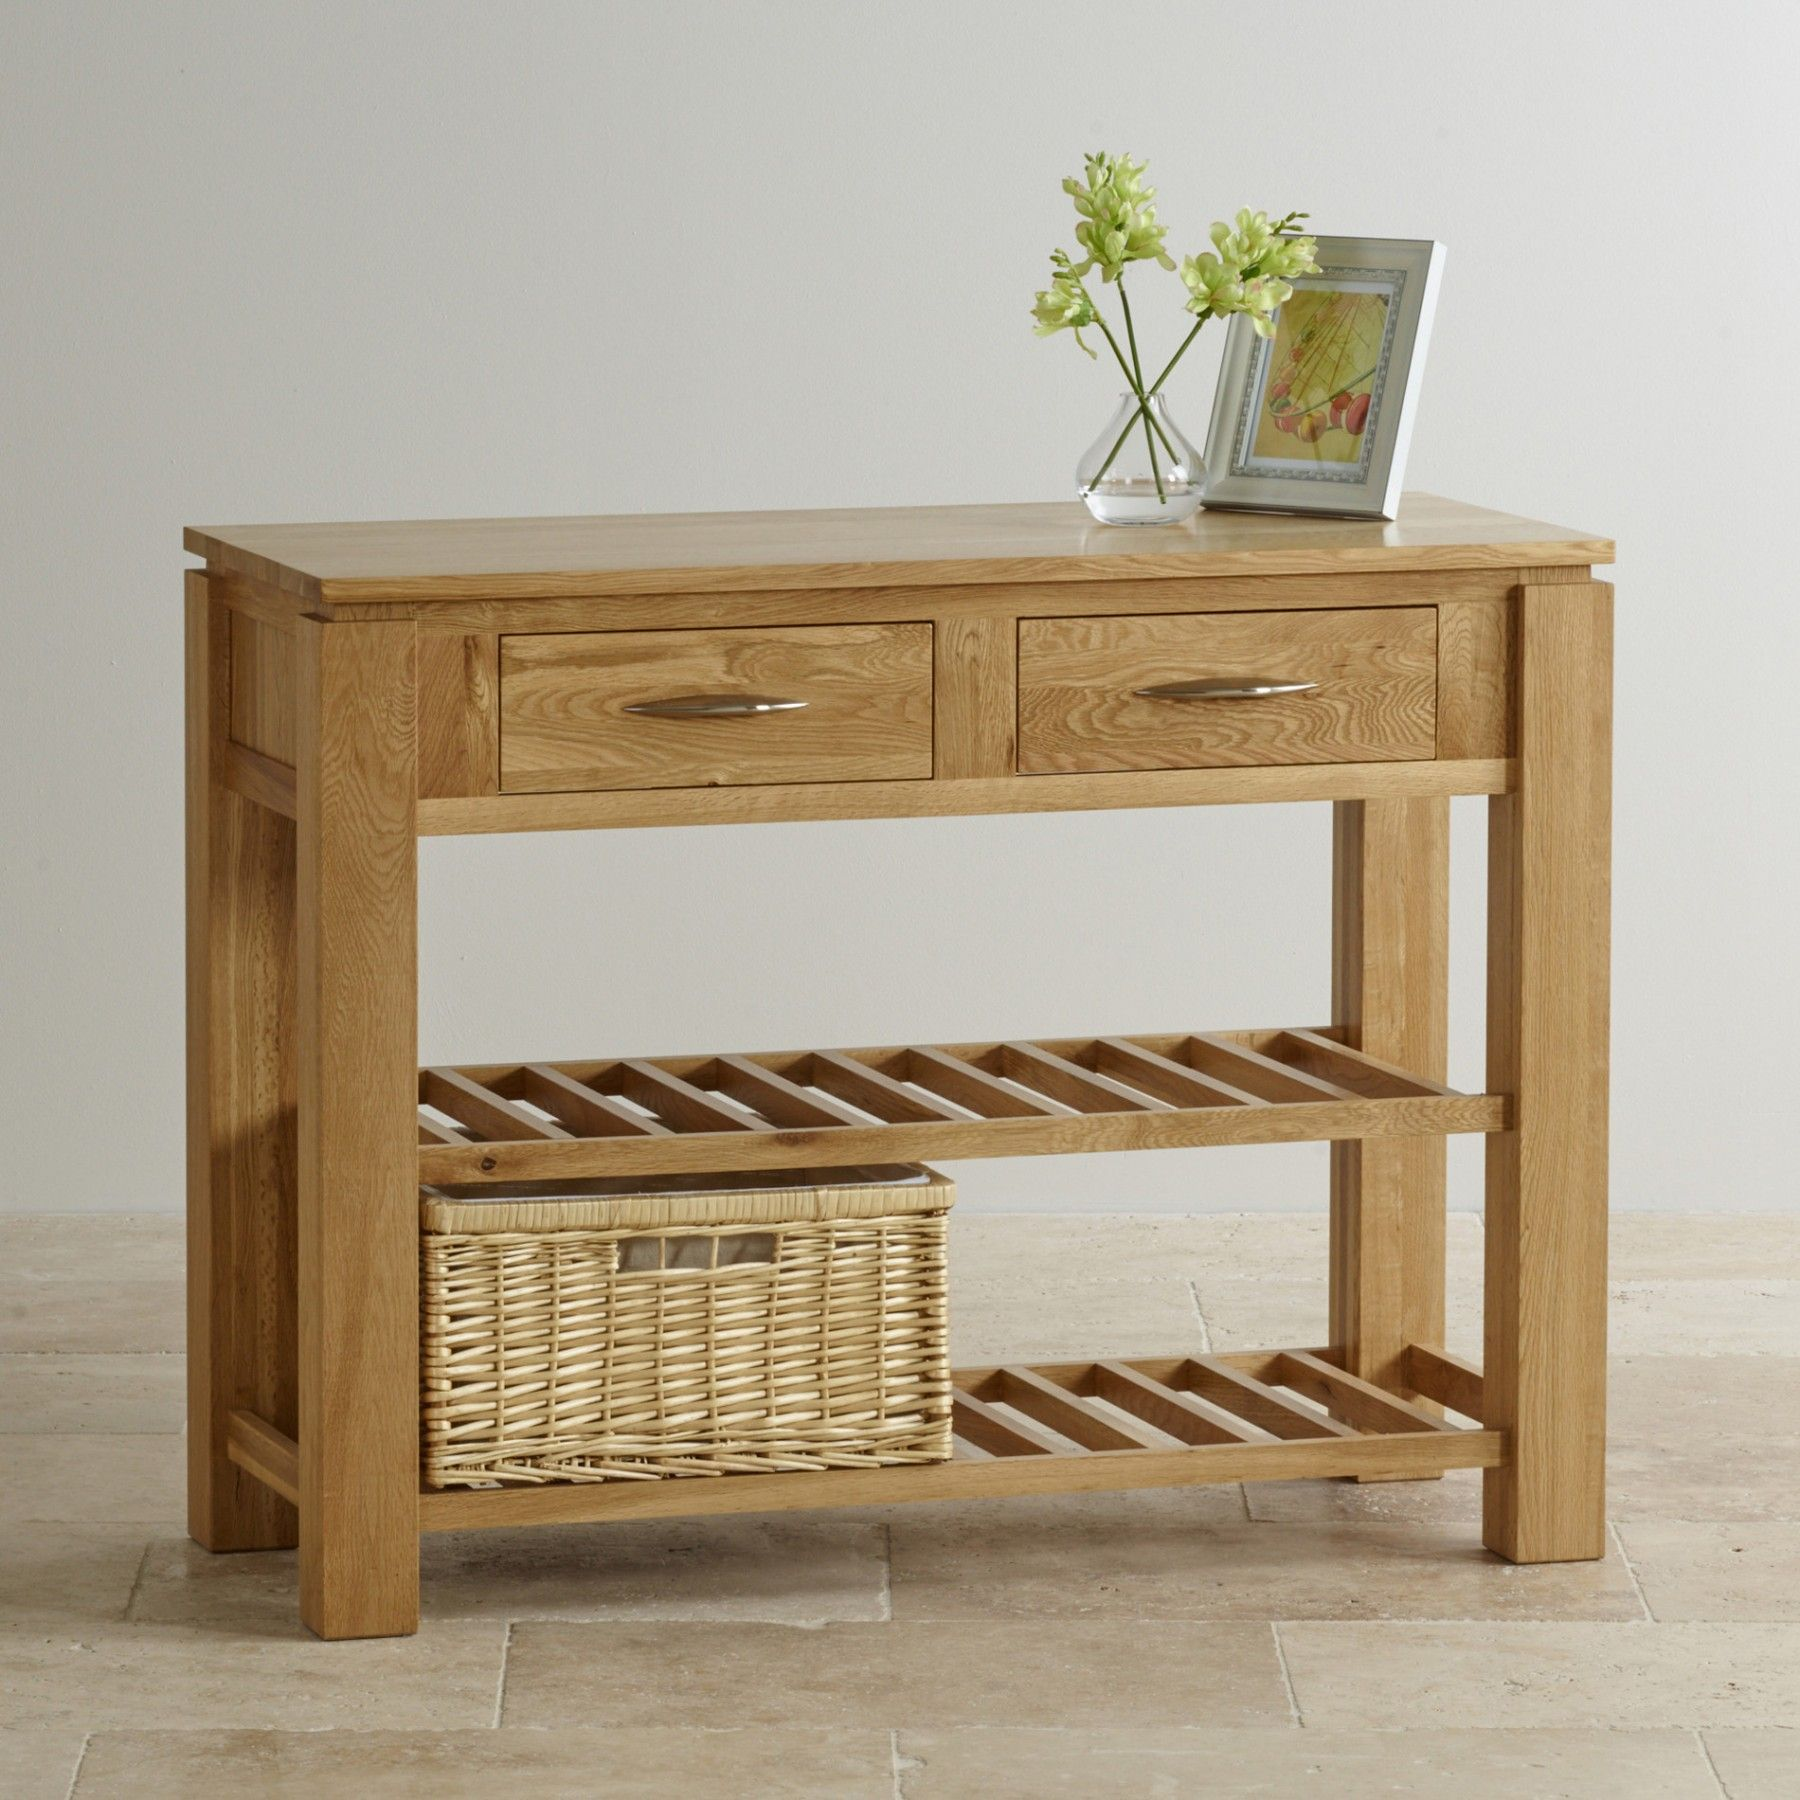 Ideal For Bathroom Storage Or Even Shoe Storage In The Hallway